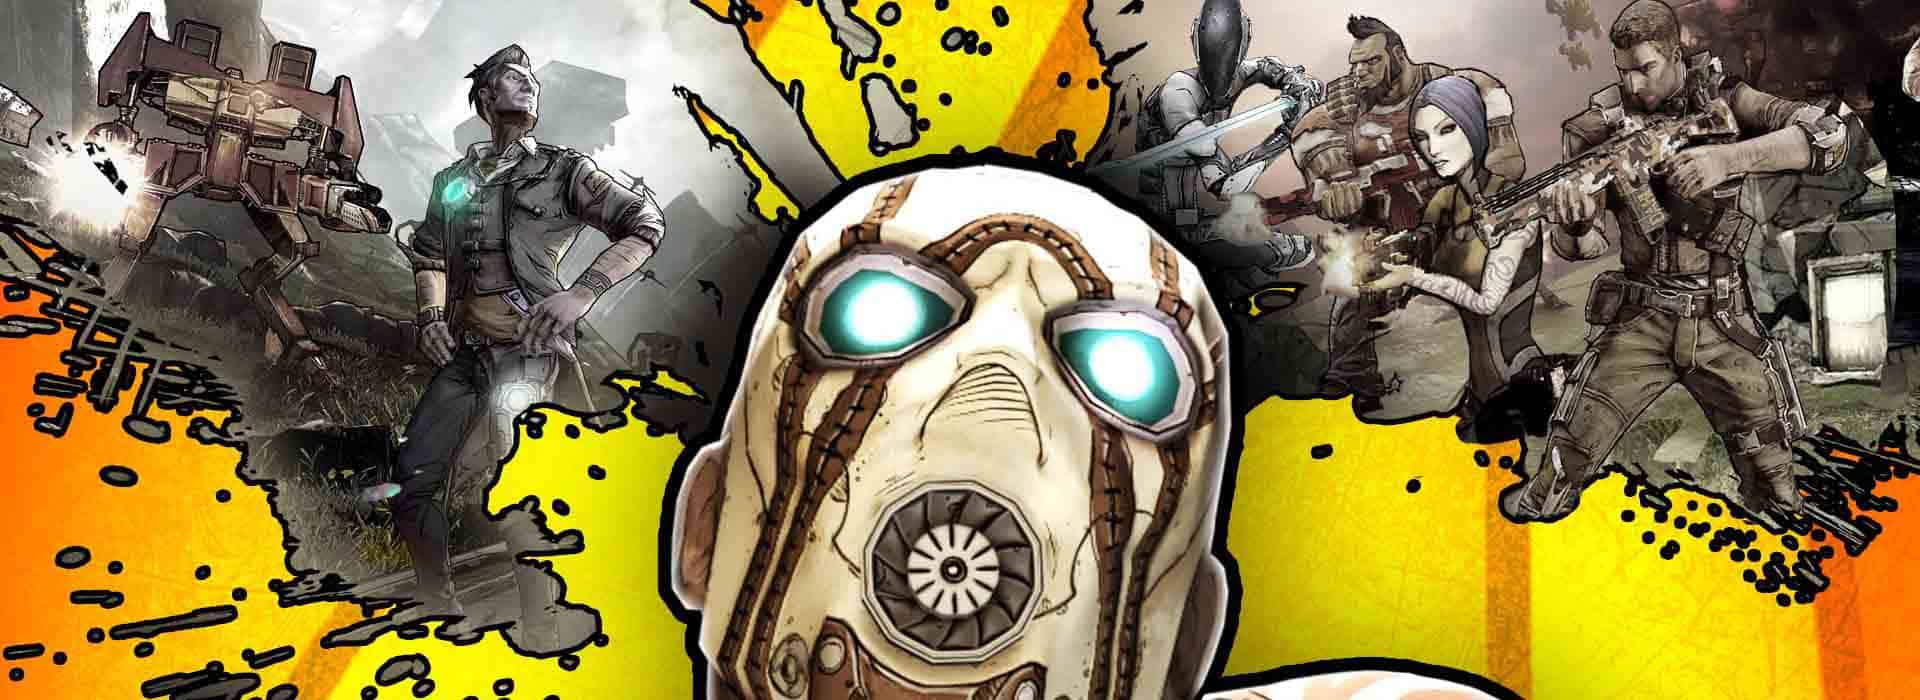 Borderlands 3 Release Date, Trailer, News and Rumors